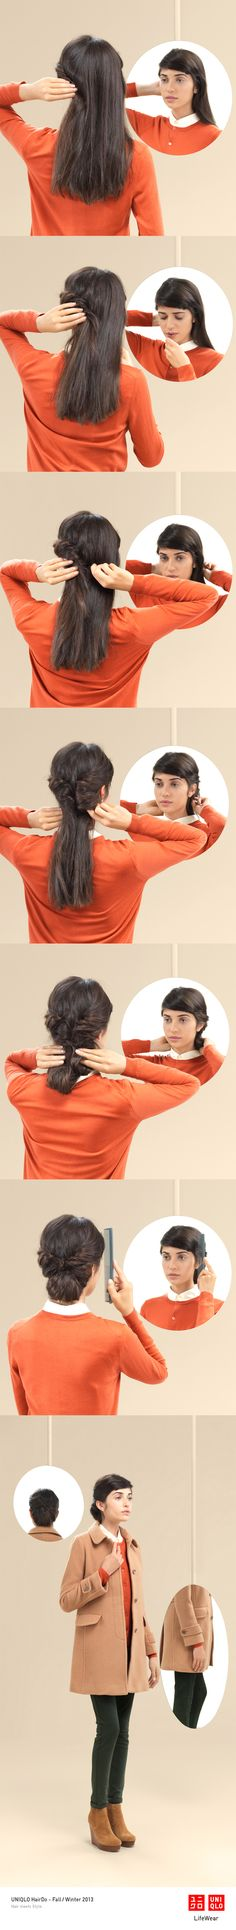 """""""THE ROUNDING"""" : Sophisticated yet simple, this style is perfect with our cashmere sweater. Click the image for DIY instructions! #UpDo #Hair #Hairstyle #DIY #UNIQLO #HairDo"""